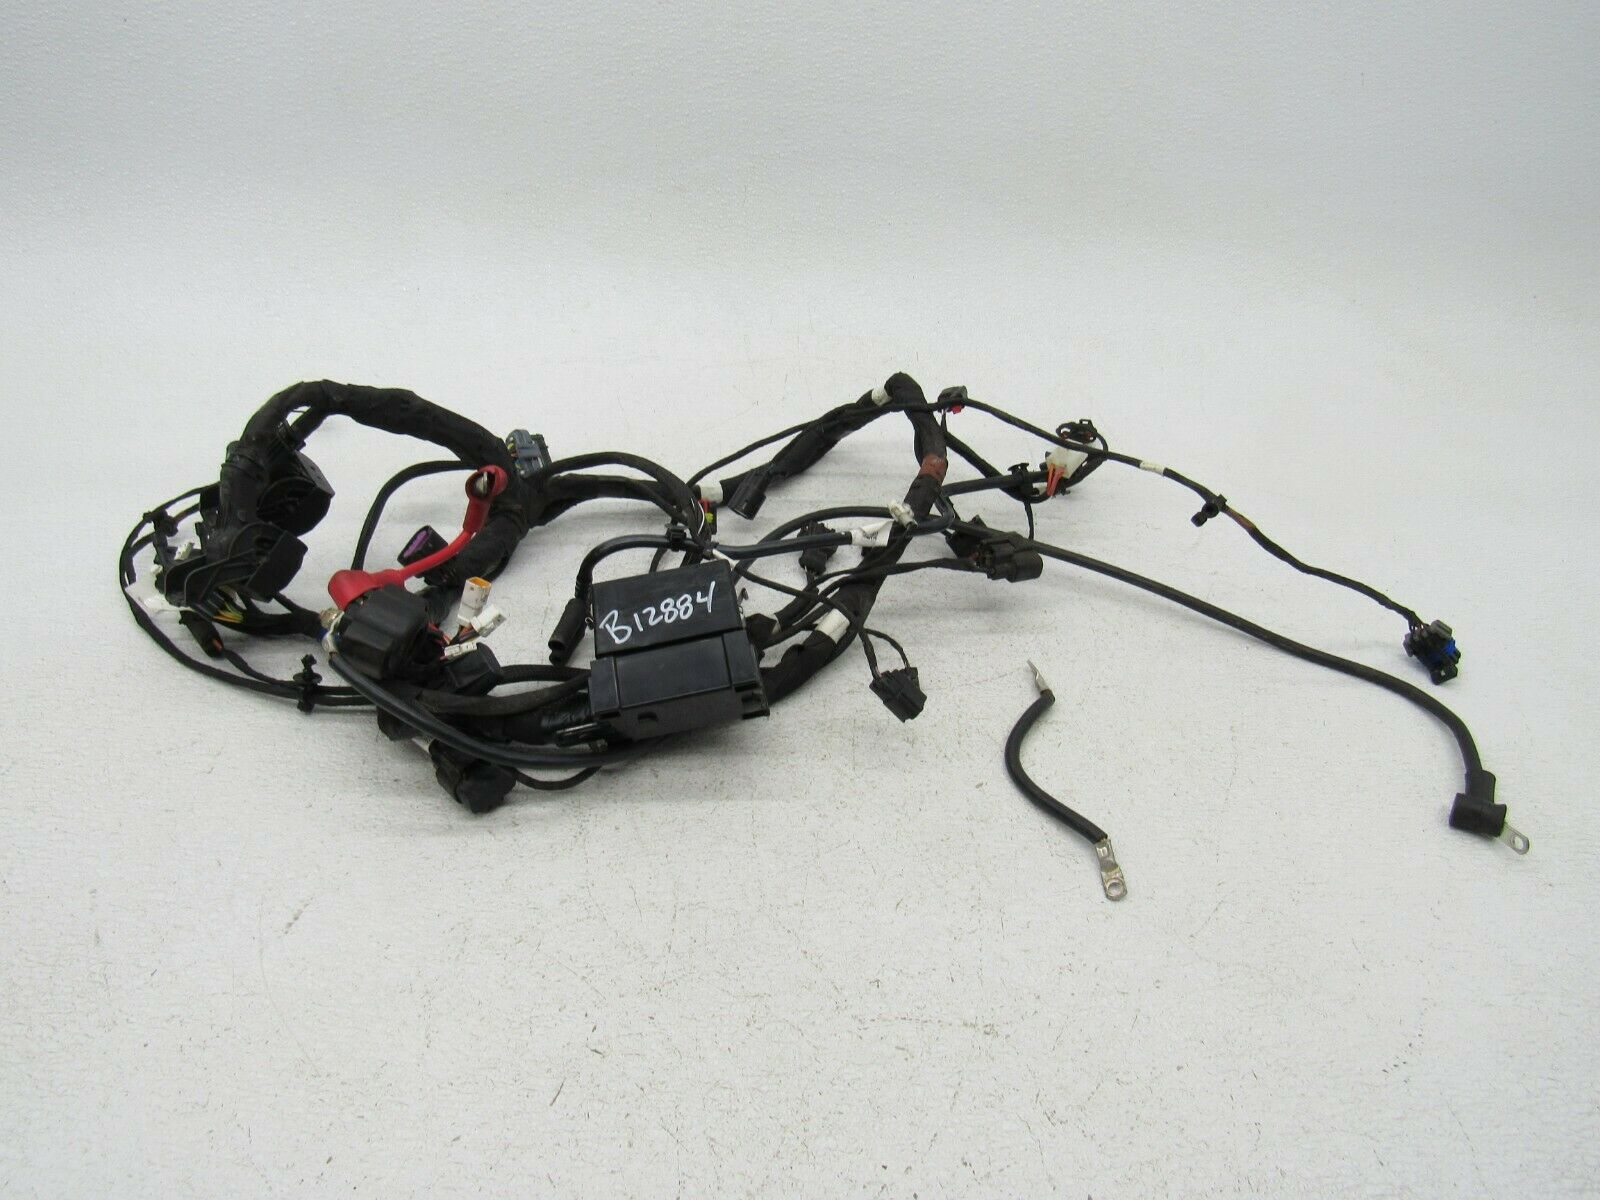 [SCHEMATICS_4HG]  2016 Indian Scout Sixty Main Engine Wiring Harness Motor Wire Loom 2413356  for sale online | eBay | Scout Wiring Harness |  | eBay